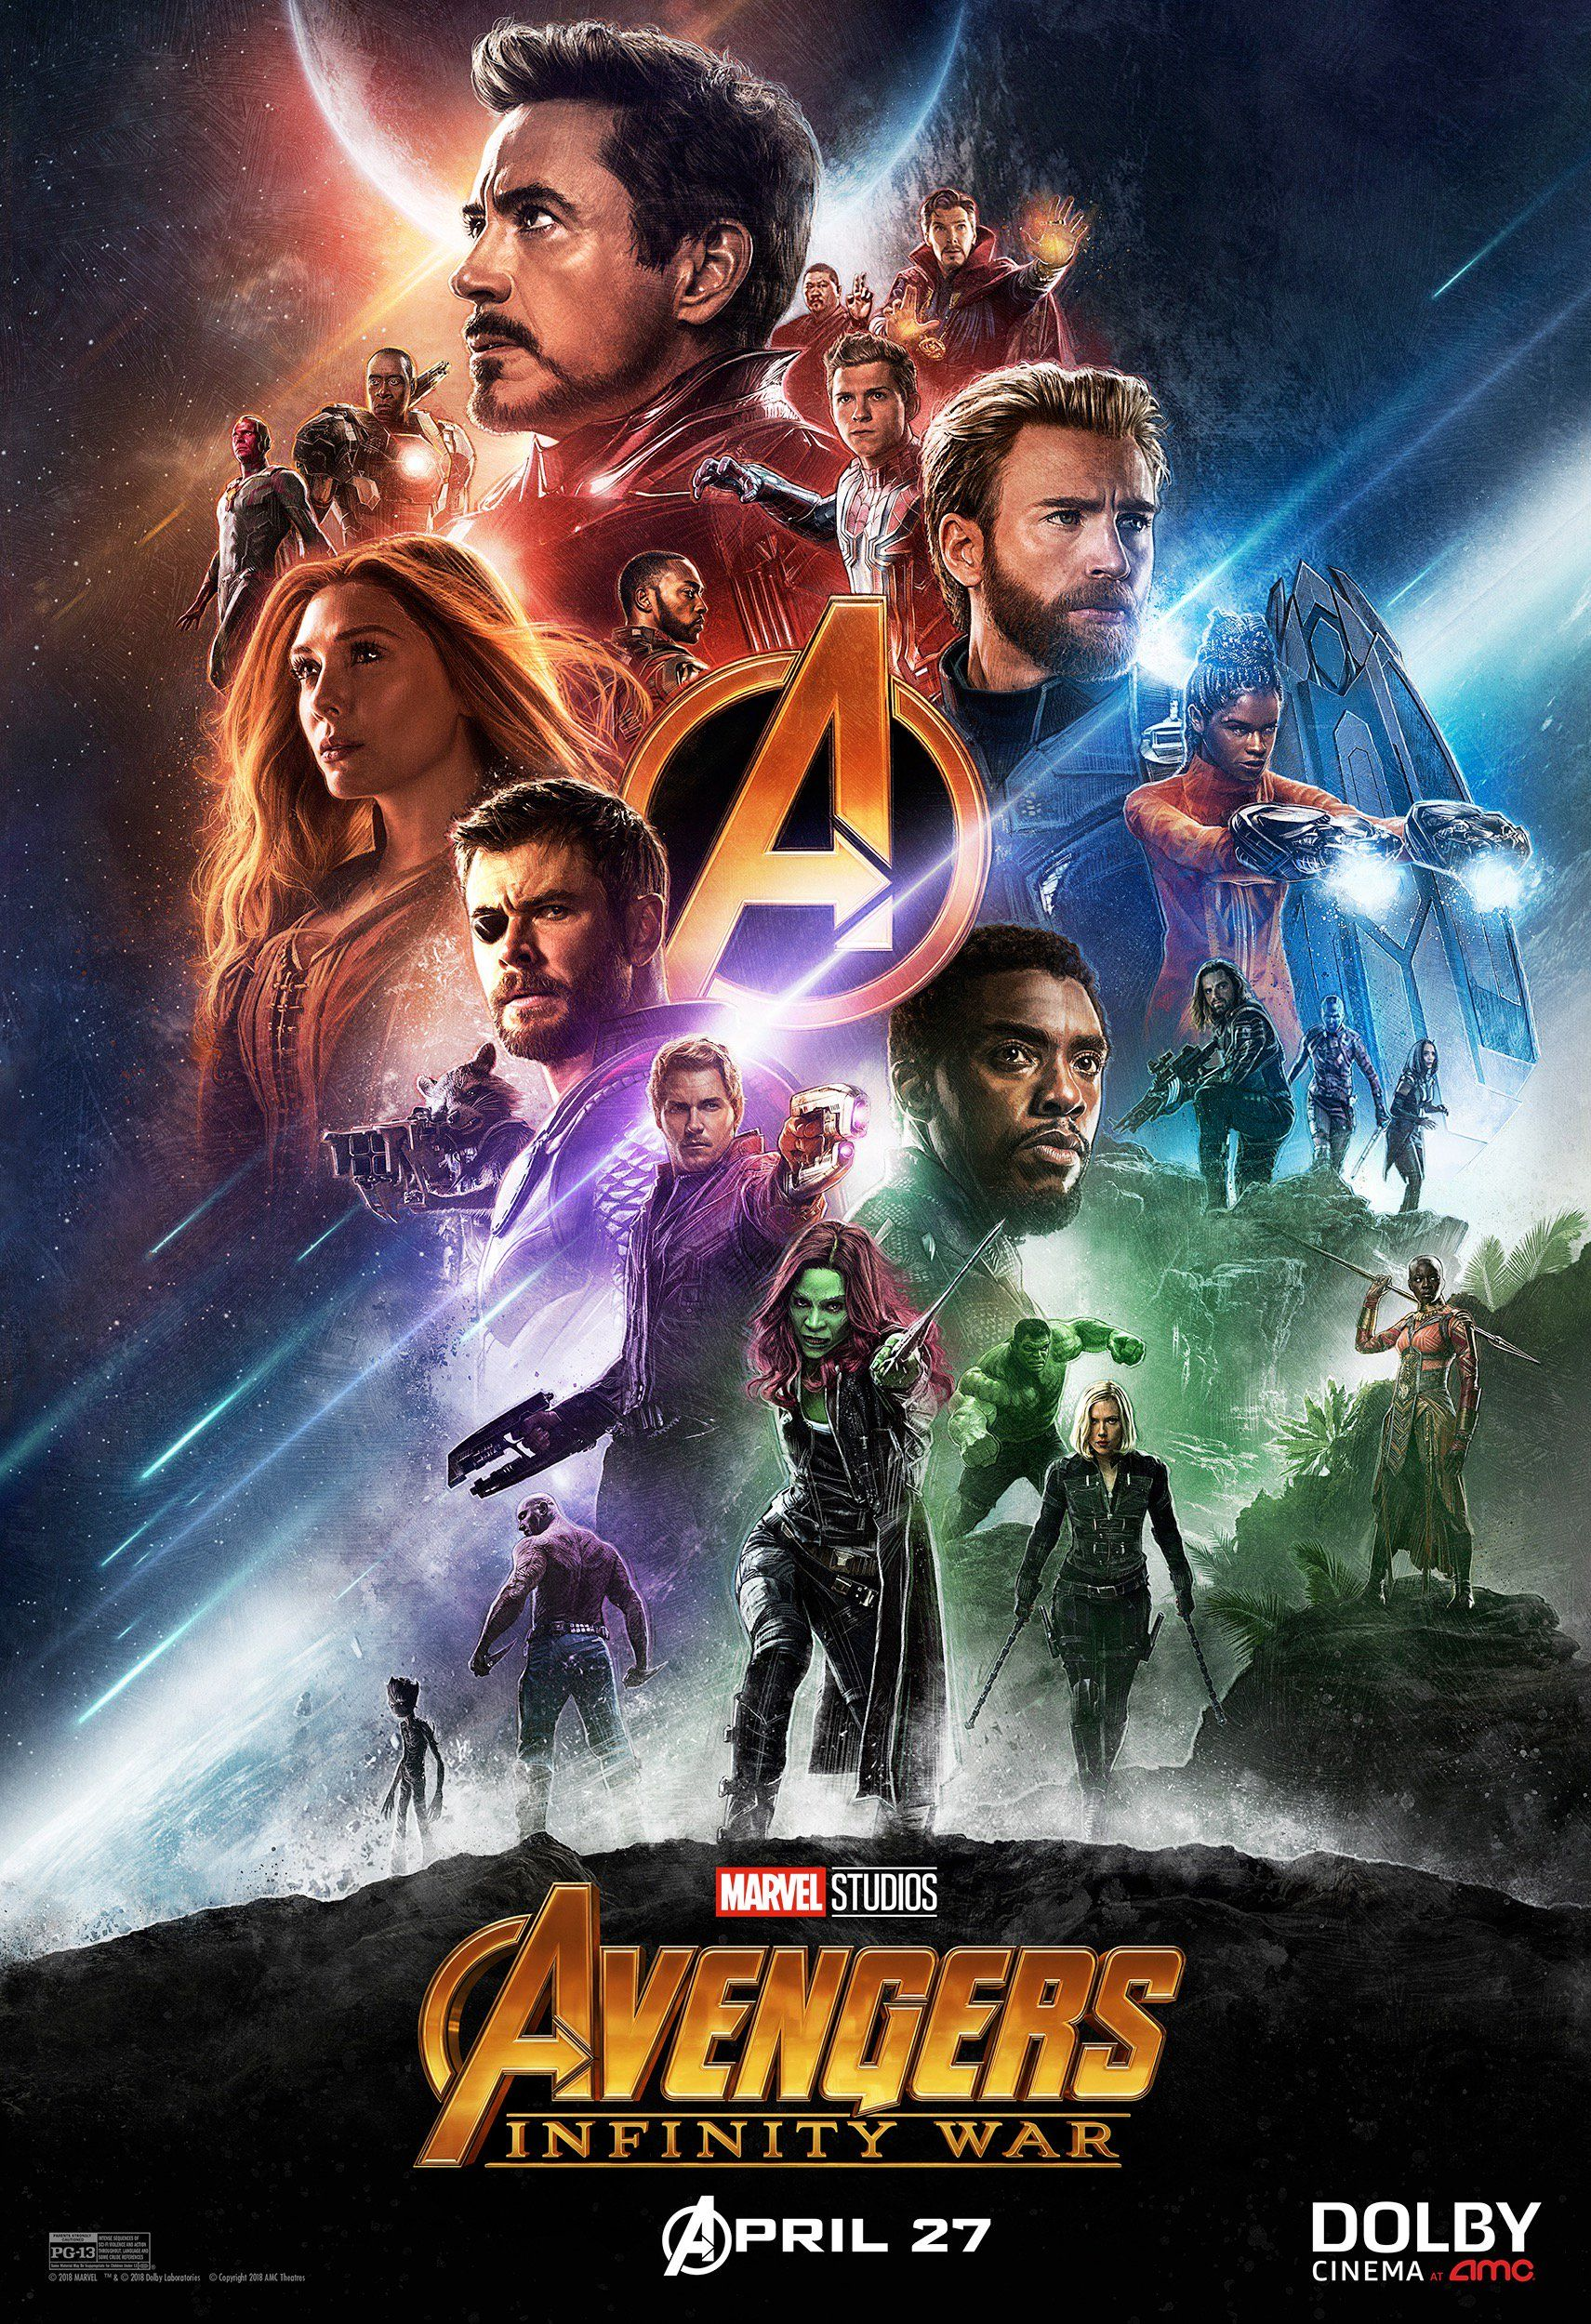 2 New Posters Revealed For Avengers Infinity War1 Marvel Posters Marvel Superheroes Marvel Studios